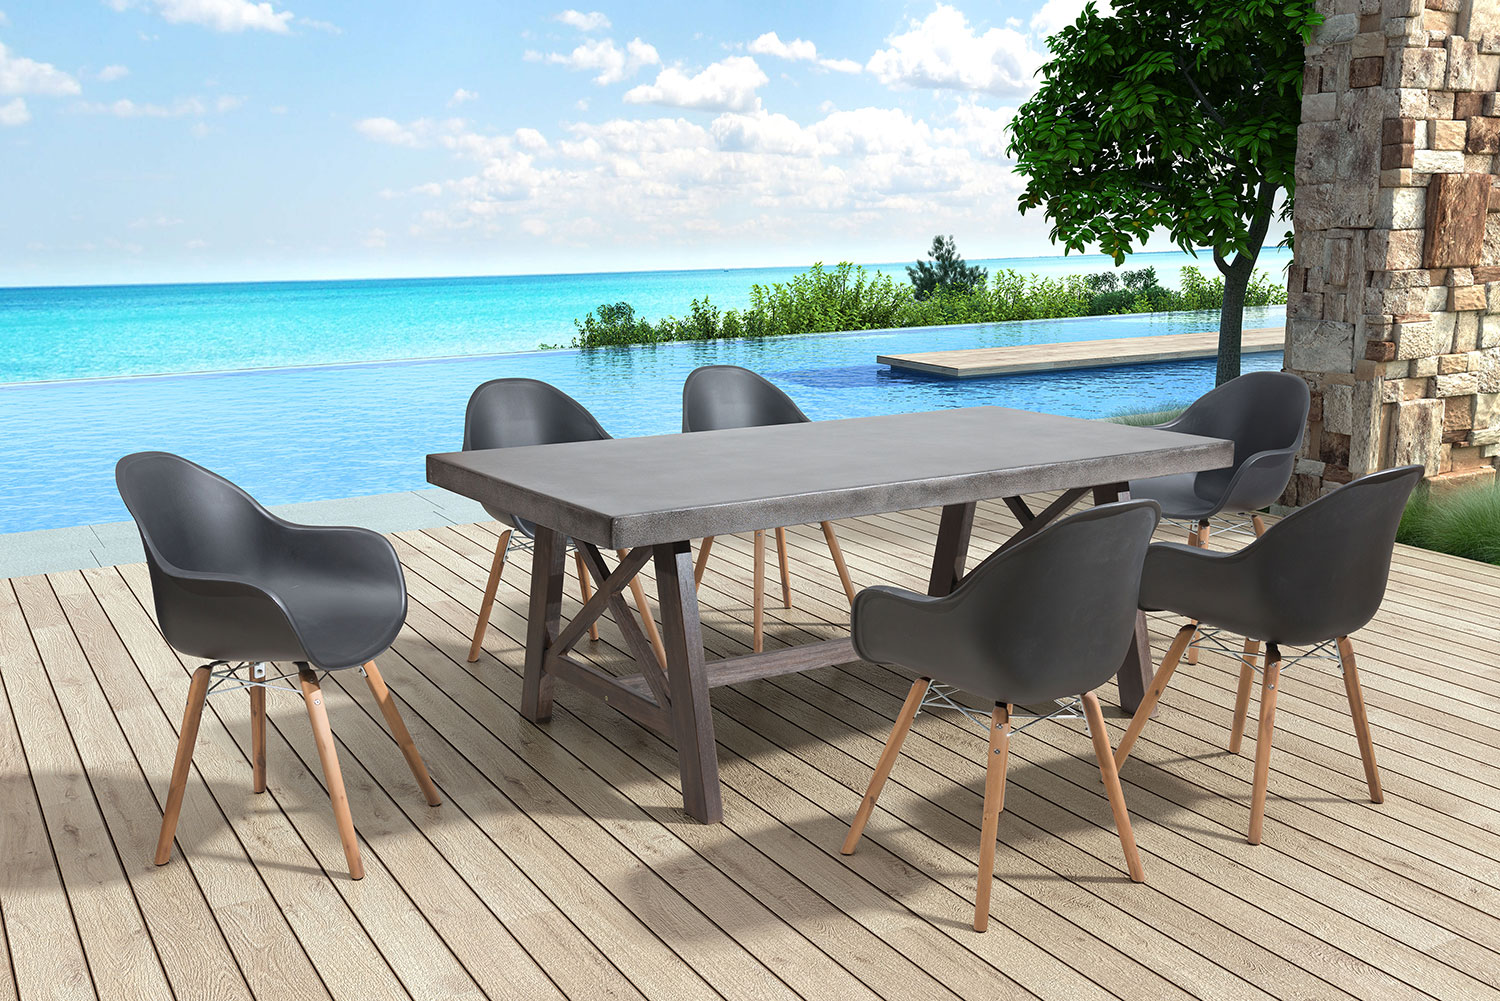 Troon Set Of 4 Outdoor Dining Chairs Black Value City Furniture And Mattresses